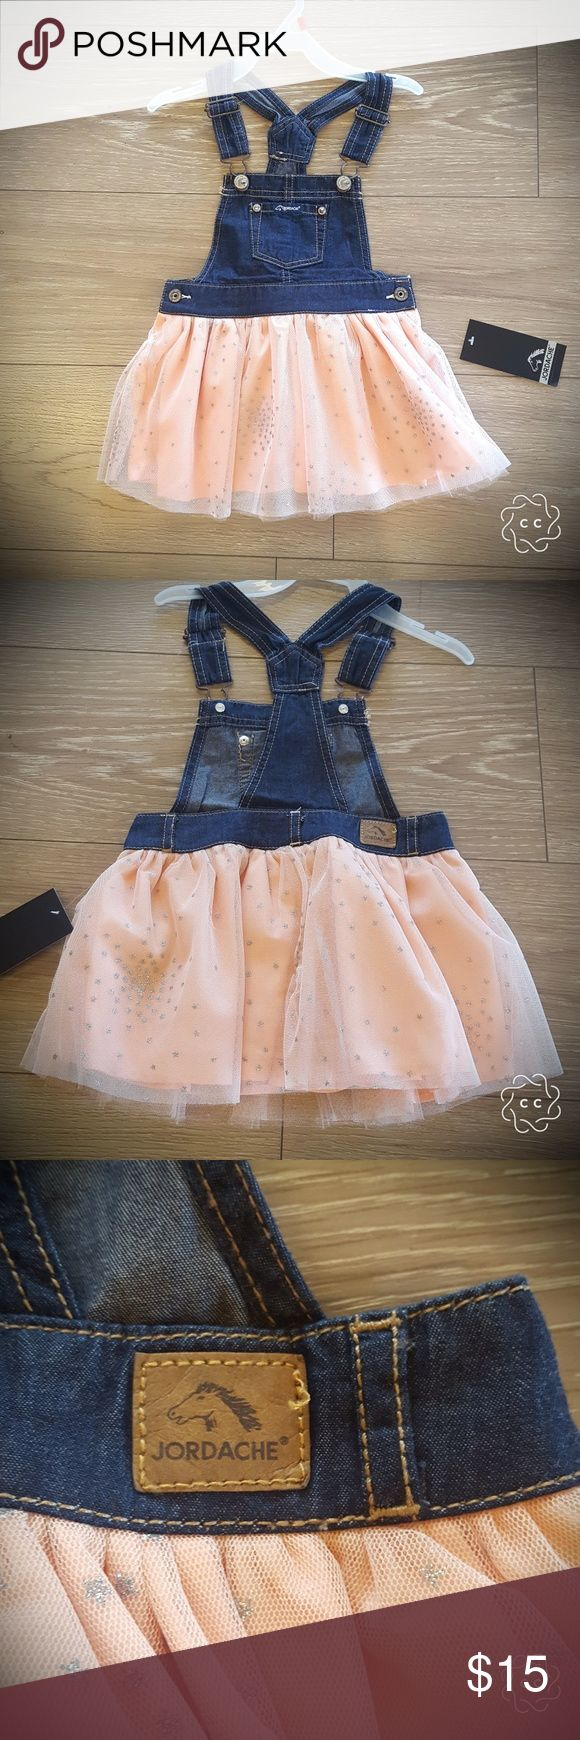 Jordache Skirt Tutu Romper New Jordache Skirt overalls Romper Denim Top with tool sparkle Tutu skirt Peach and silver tutu Various szs  New with tags jordache Dresses Casual